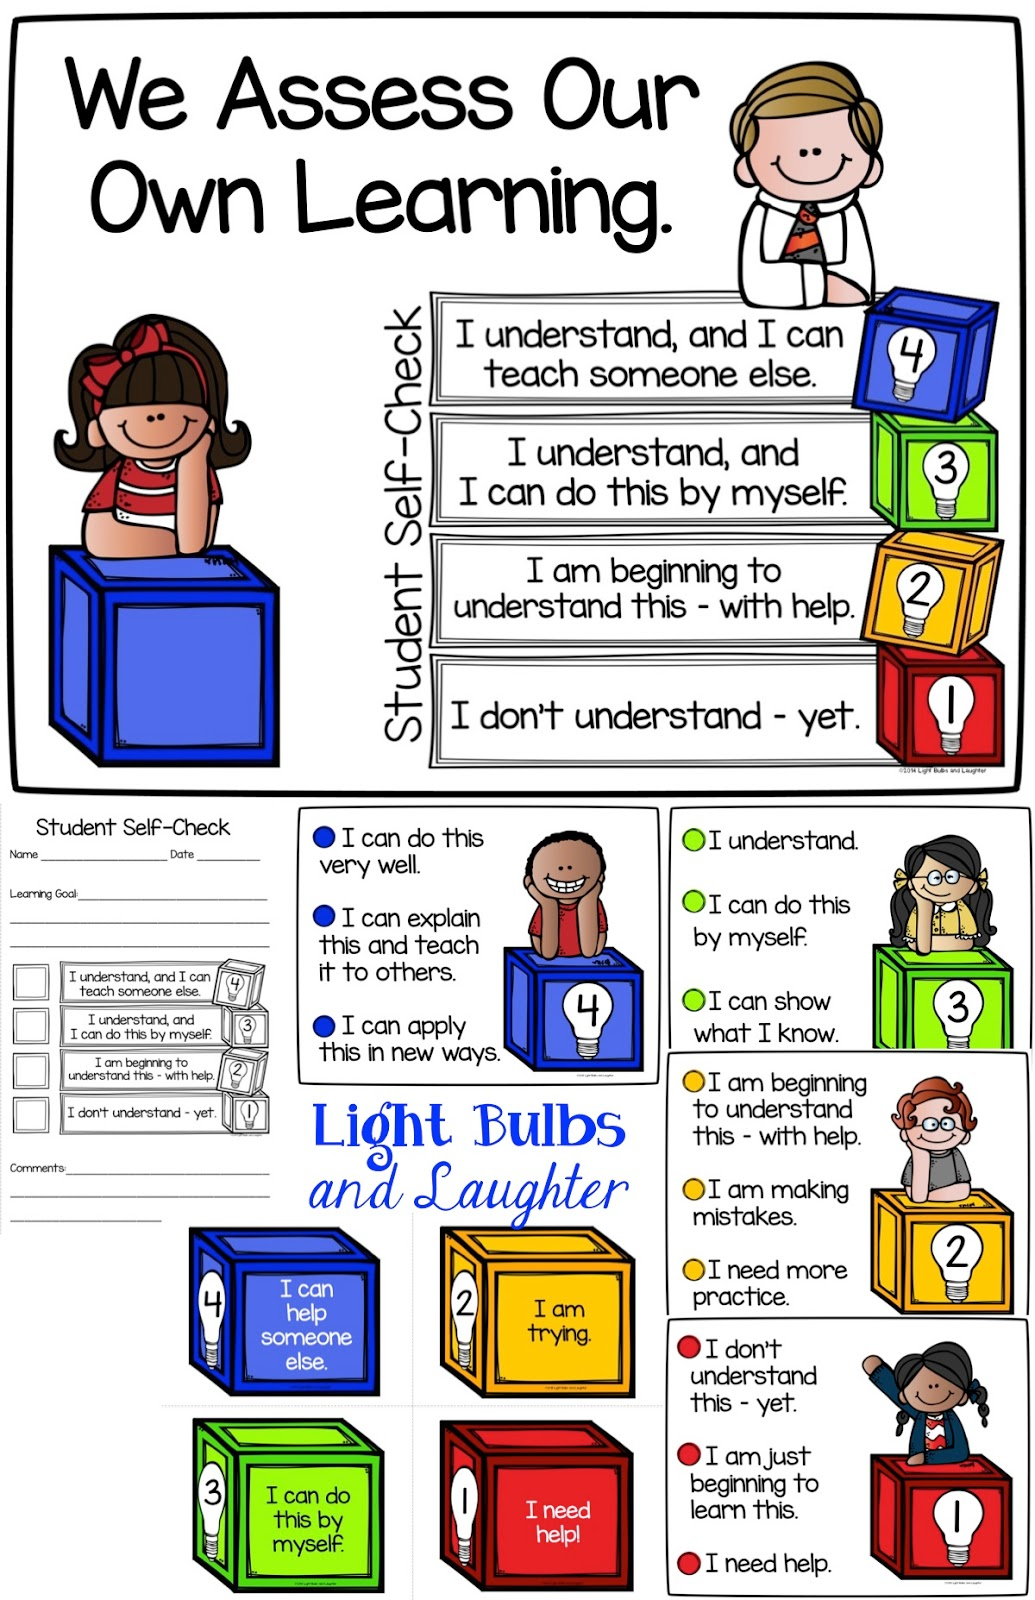 Student Self Assessment Posters - Light Bulbs and Laughter Blog